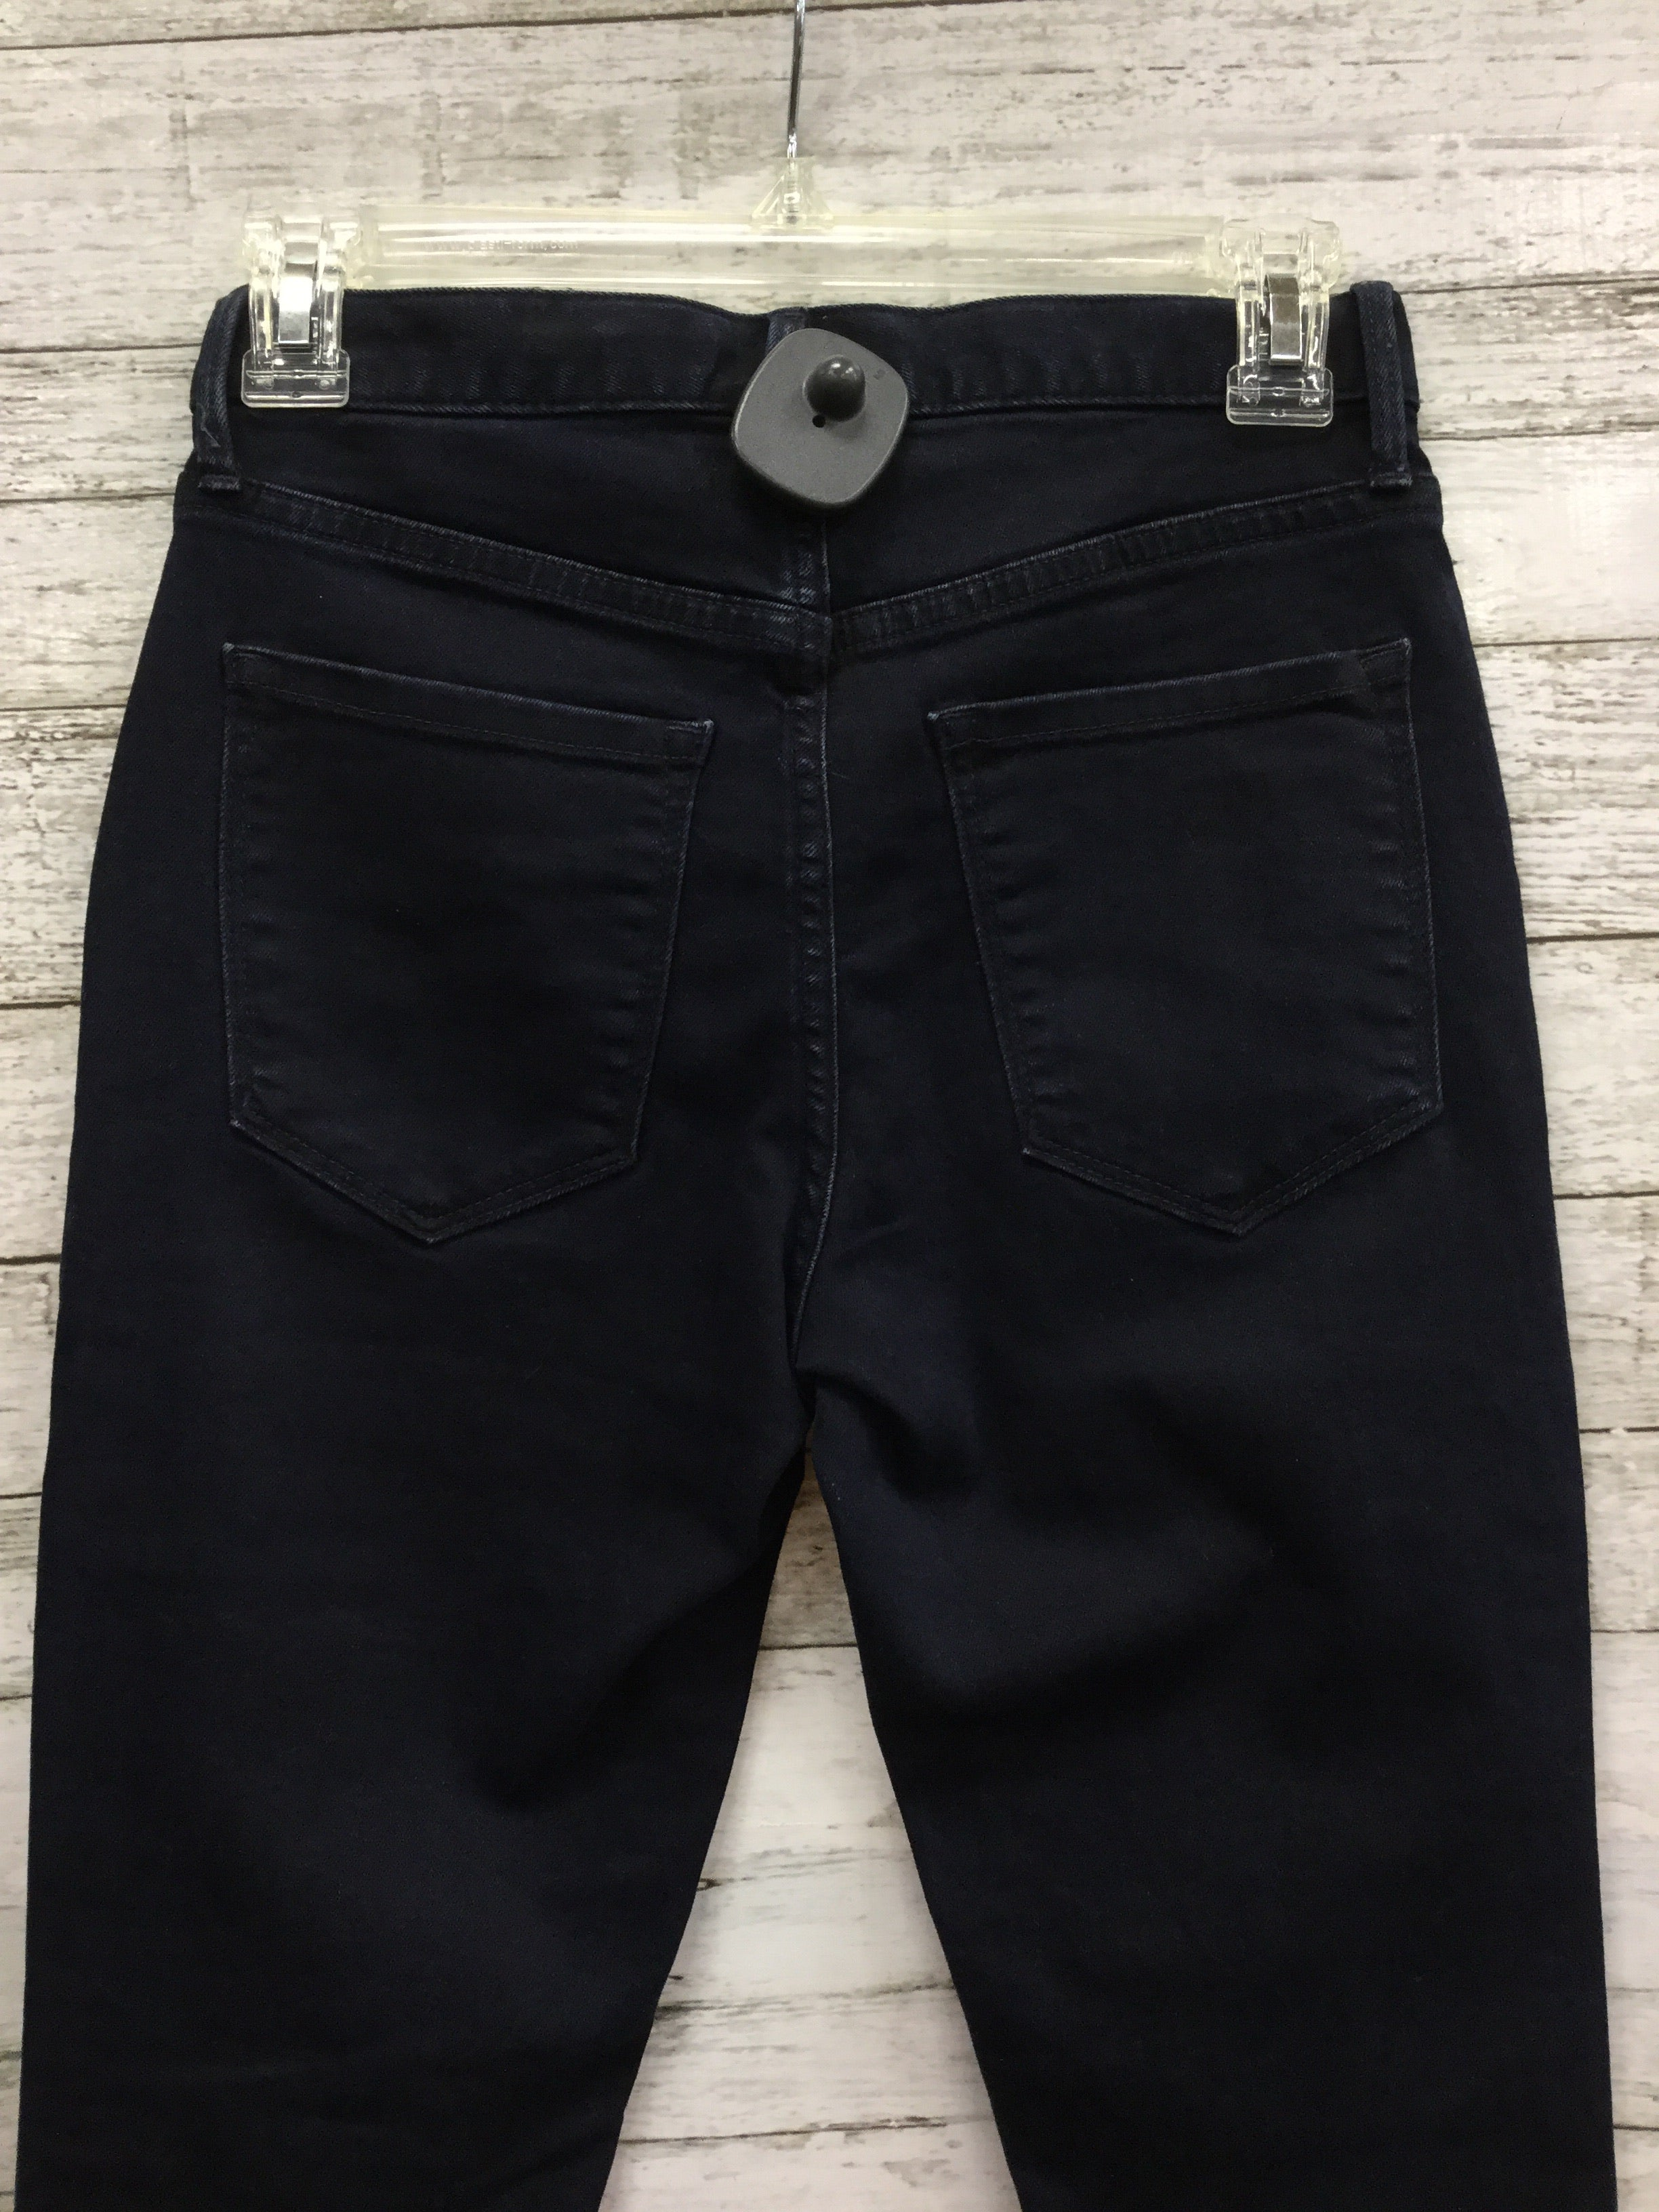 Photo #4 - BRAND: BANANA REPUBLIC , STYLE: JEANS , COLOR: DENIM , SIZE: 0 , OTHER INFO: NEW! , SKU: 127-4954-4755, , NEW WITH TAGS, HIGH RISE, SKINNY, ANKLE JEANS.